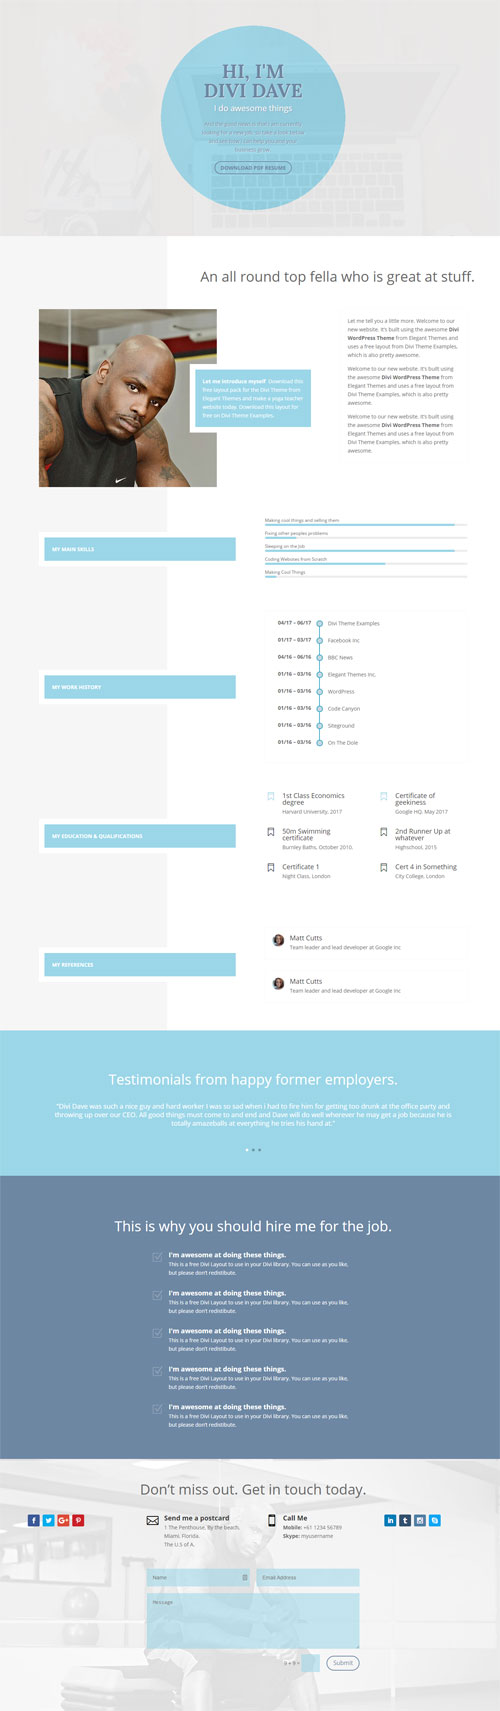 ResumeCV 1 Page layout Divi Theme Layouts